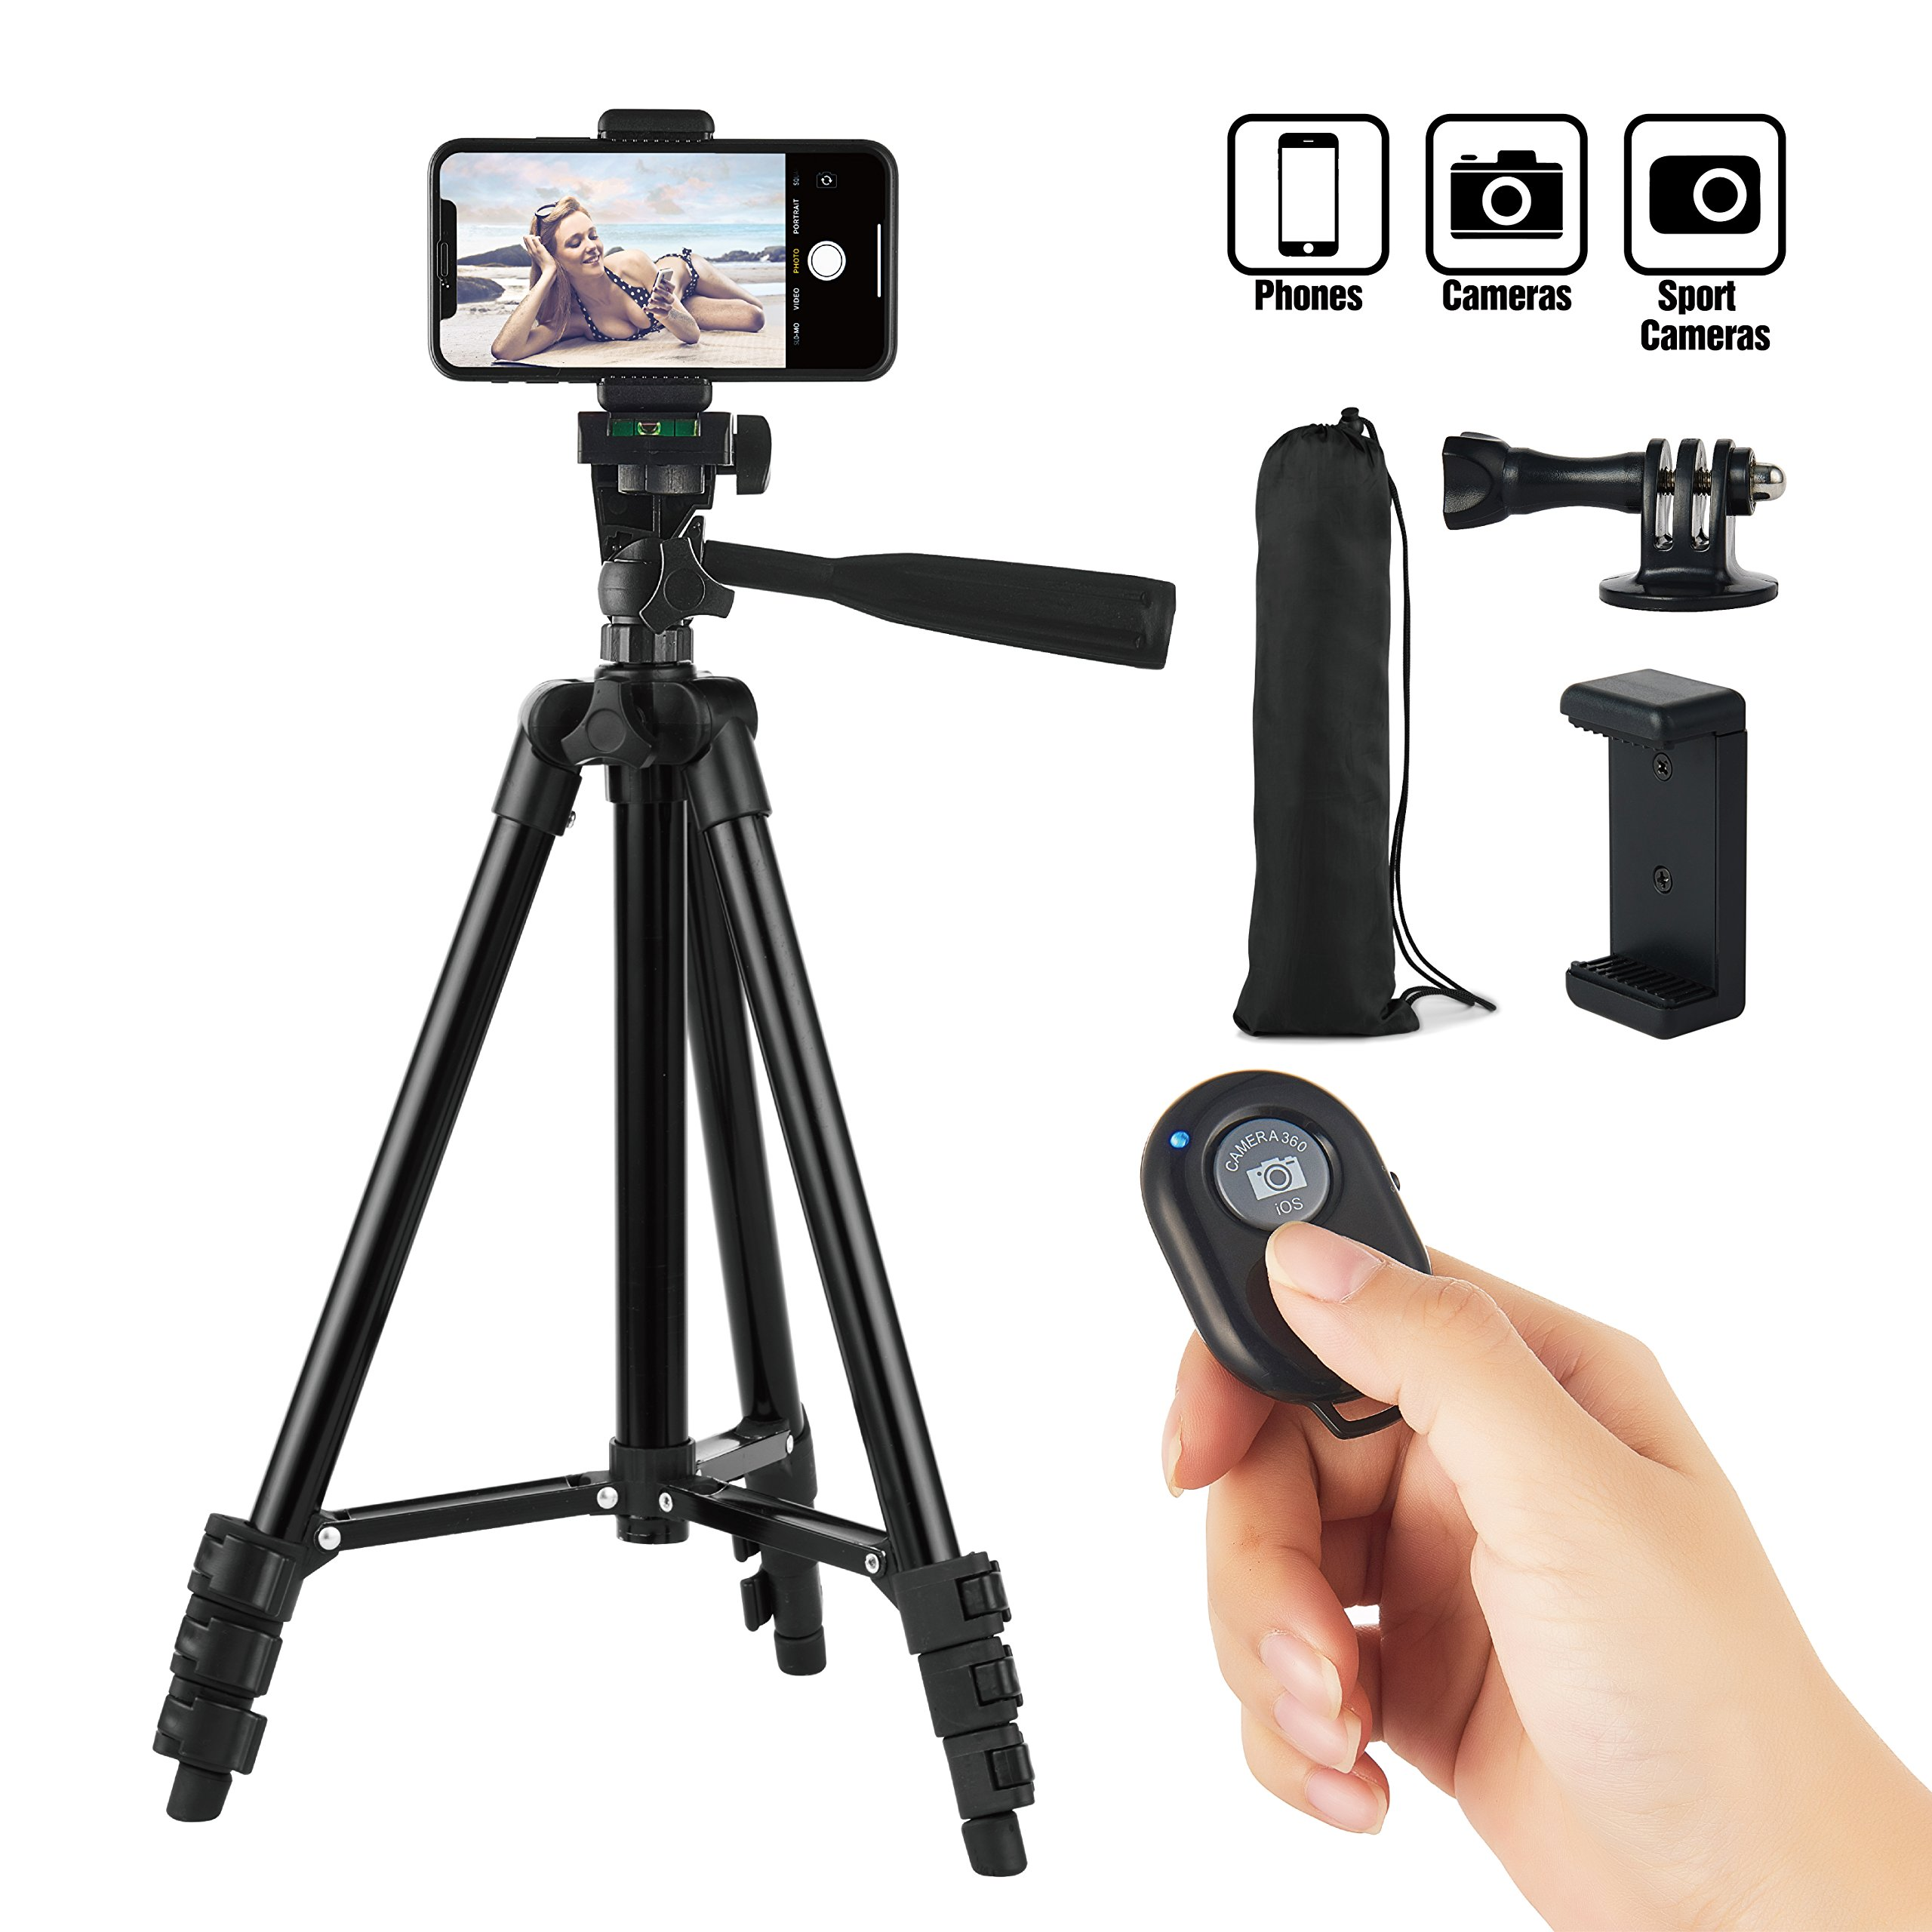 Hitch Phone Tripod,Gopro Tripod 42 Inch 106cm Aluminum Lightweight Smartphone Tripod for Iphone/Samsung/Huawei Cellphone, Camera and Gopro with Bluetooth Remote Control, Carrying Bag and Gopro Mount by Hitchs